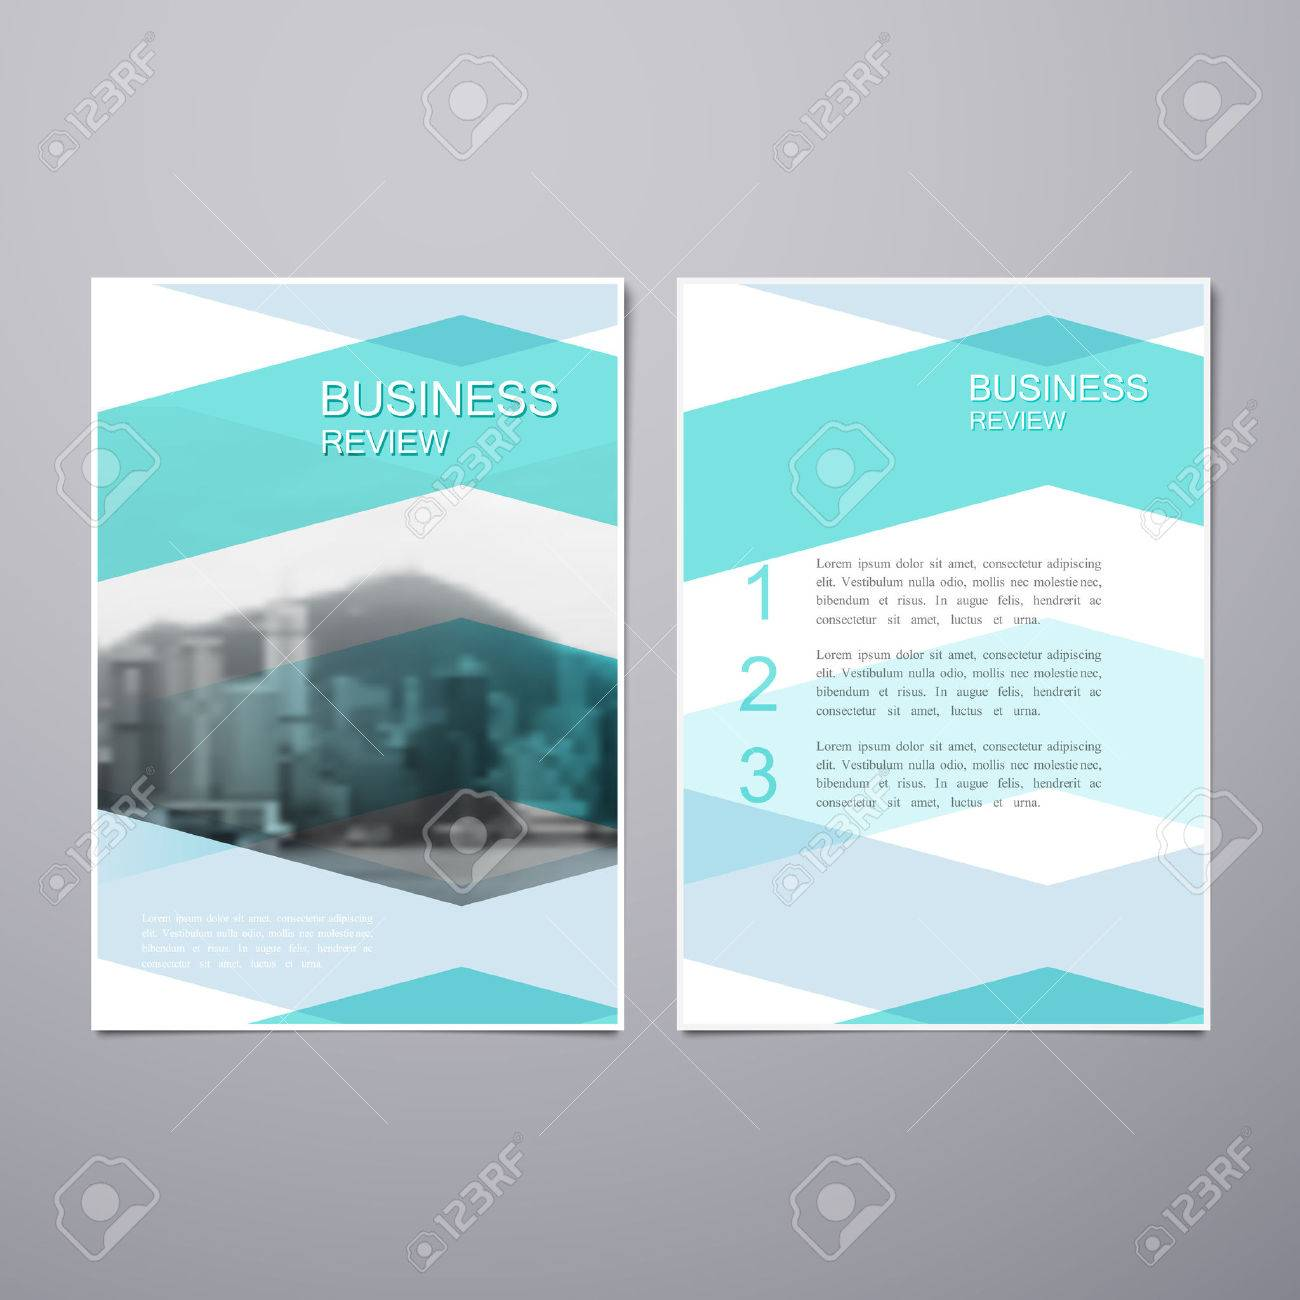 business review leaflet. brochure or flyer a4 size template design, Presentation templates